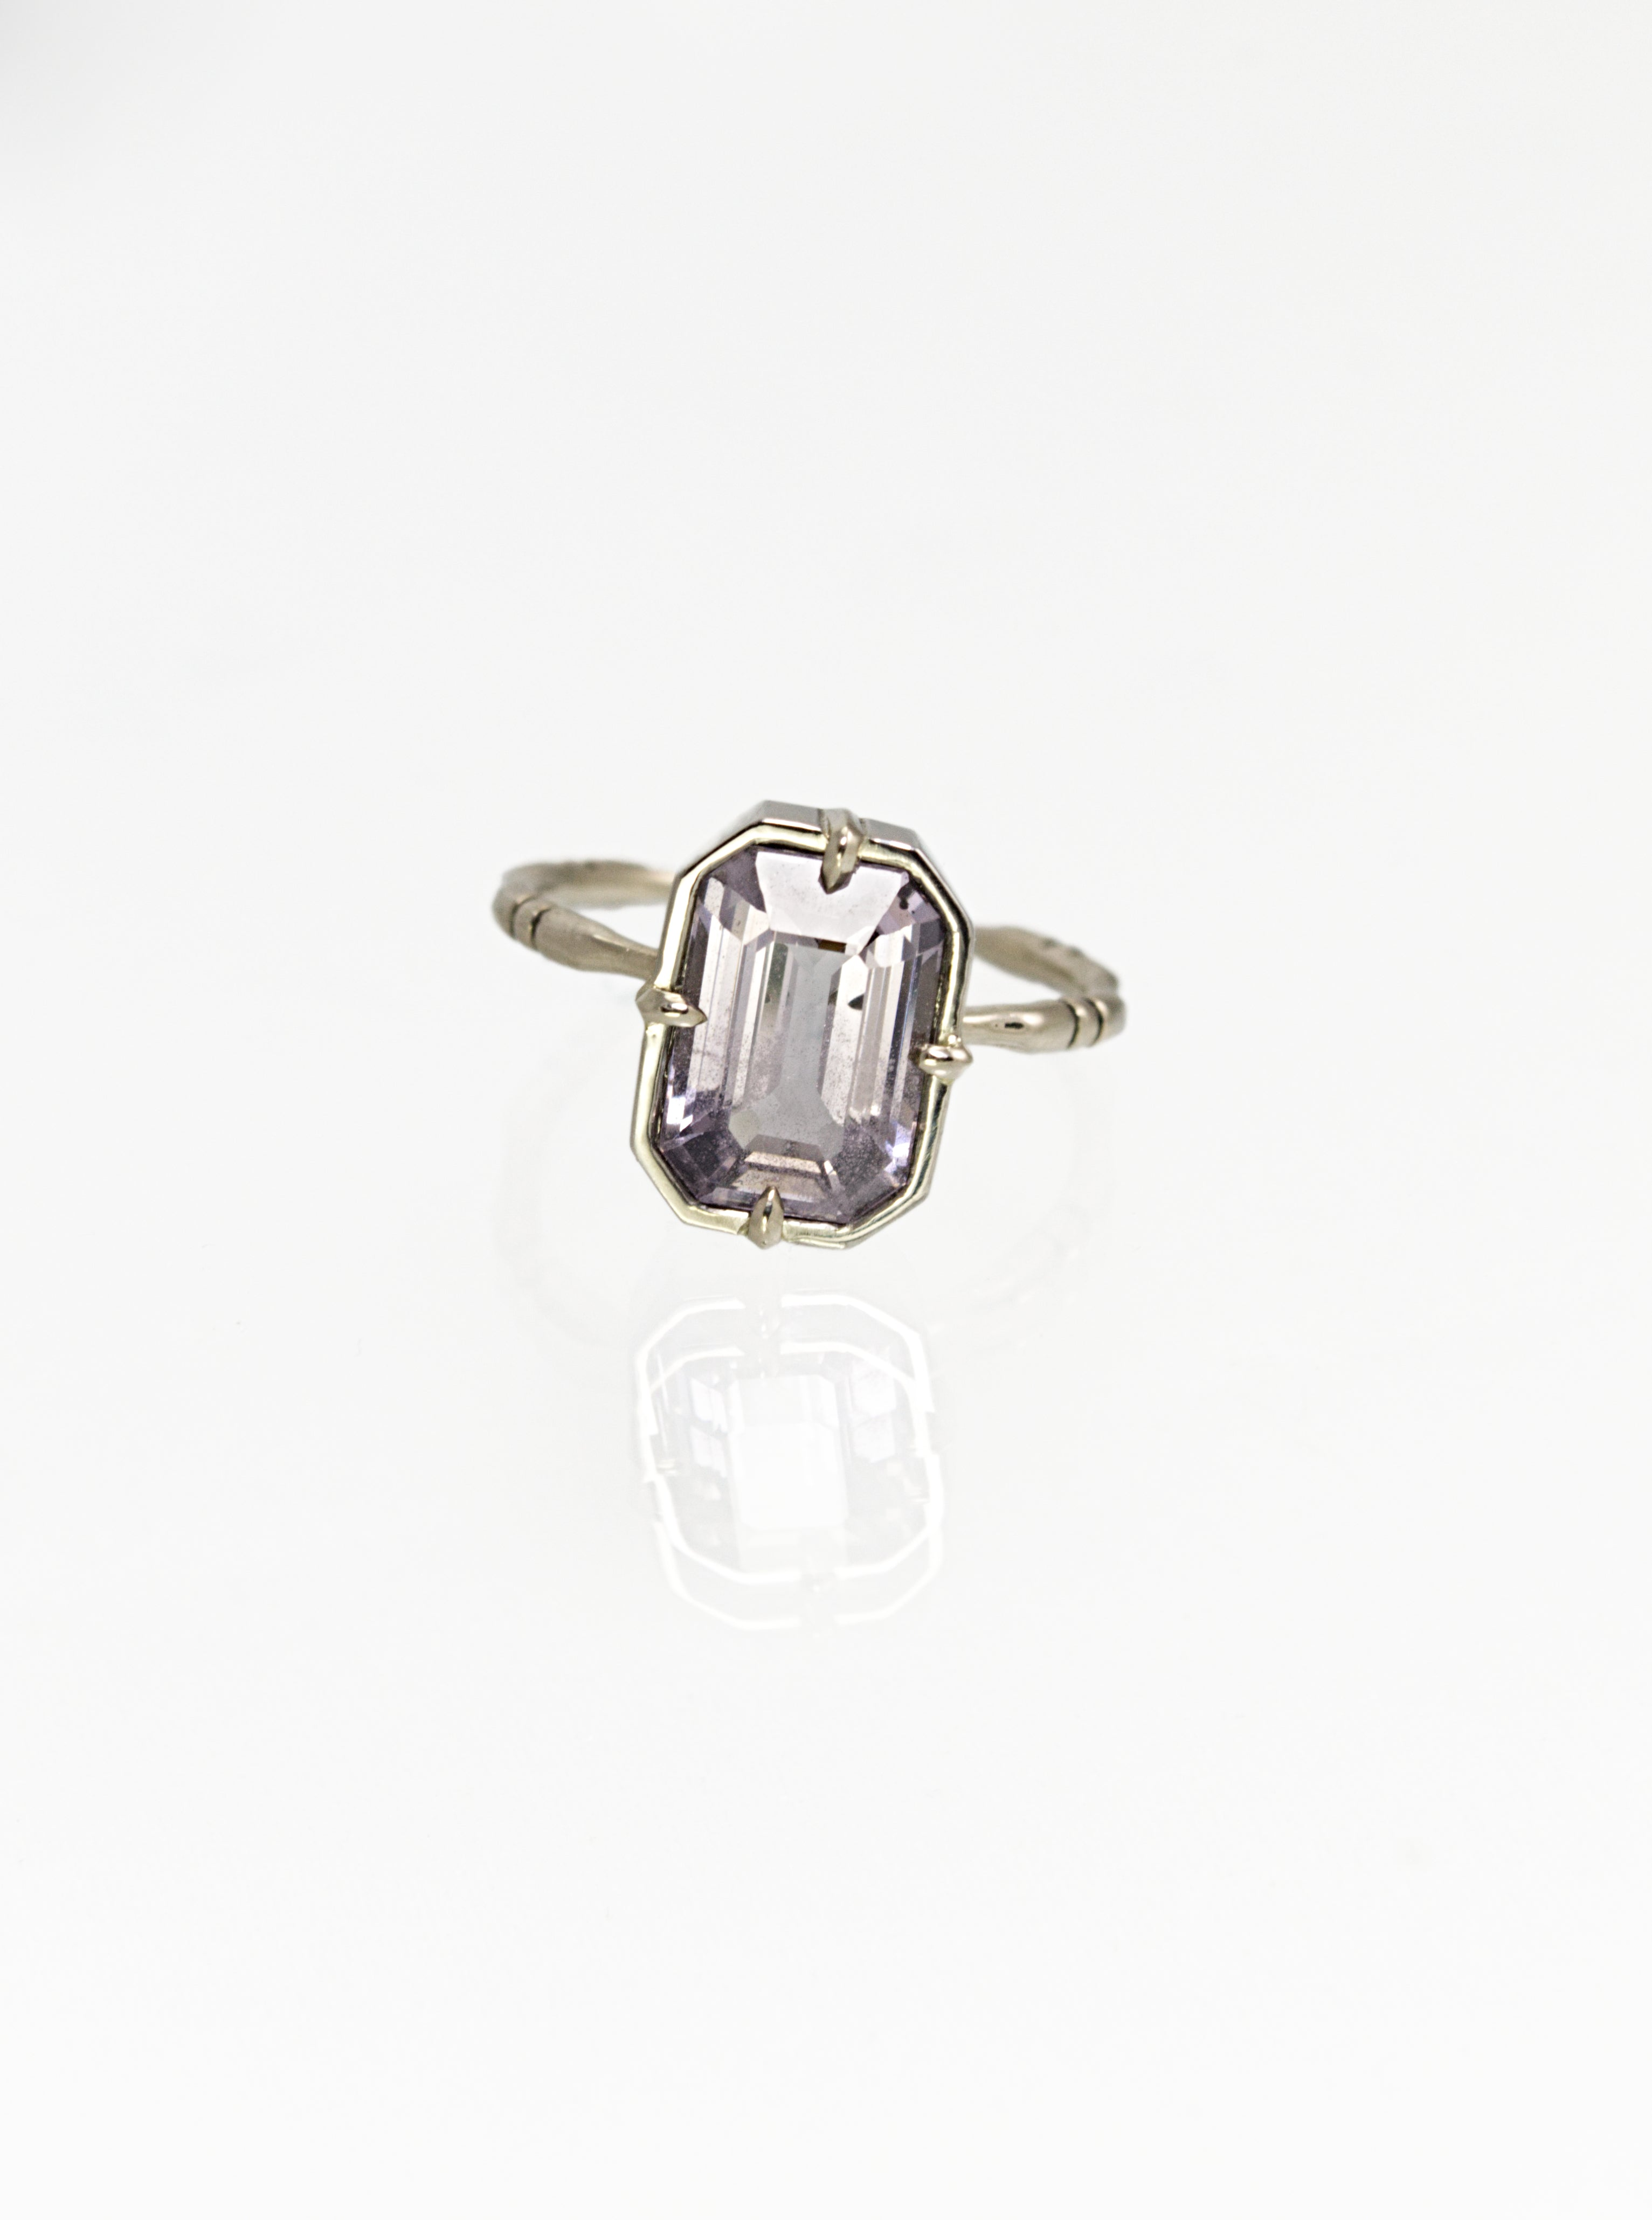 Lavender Spinel Bone Ring - 14k Palladium White Gold